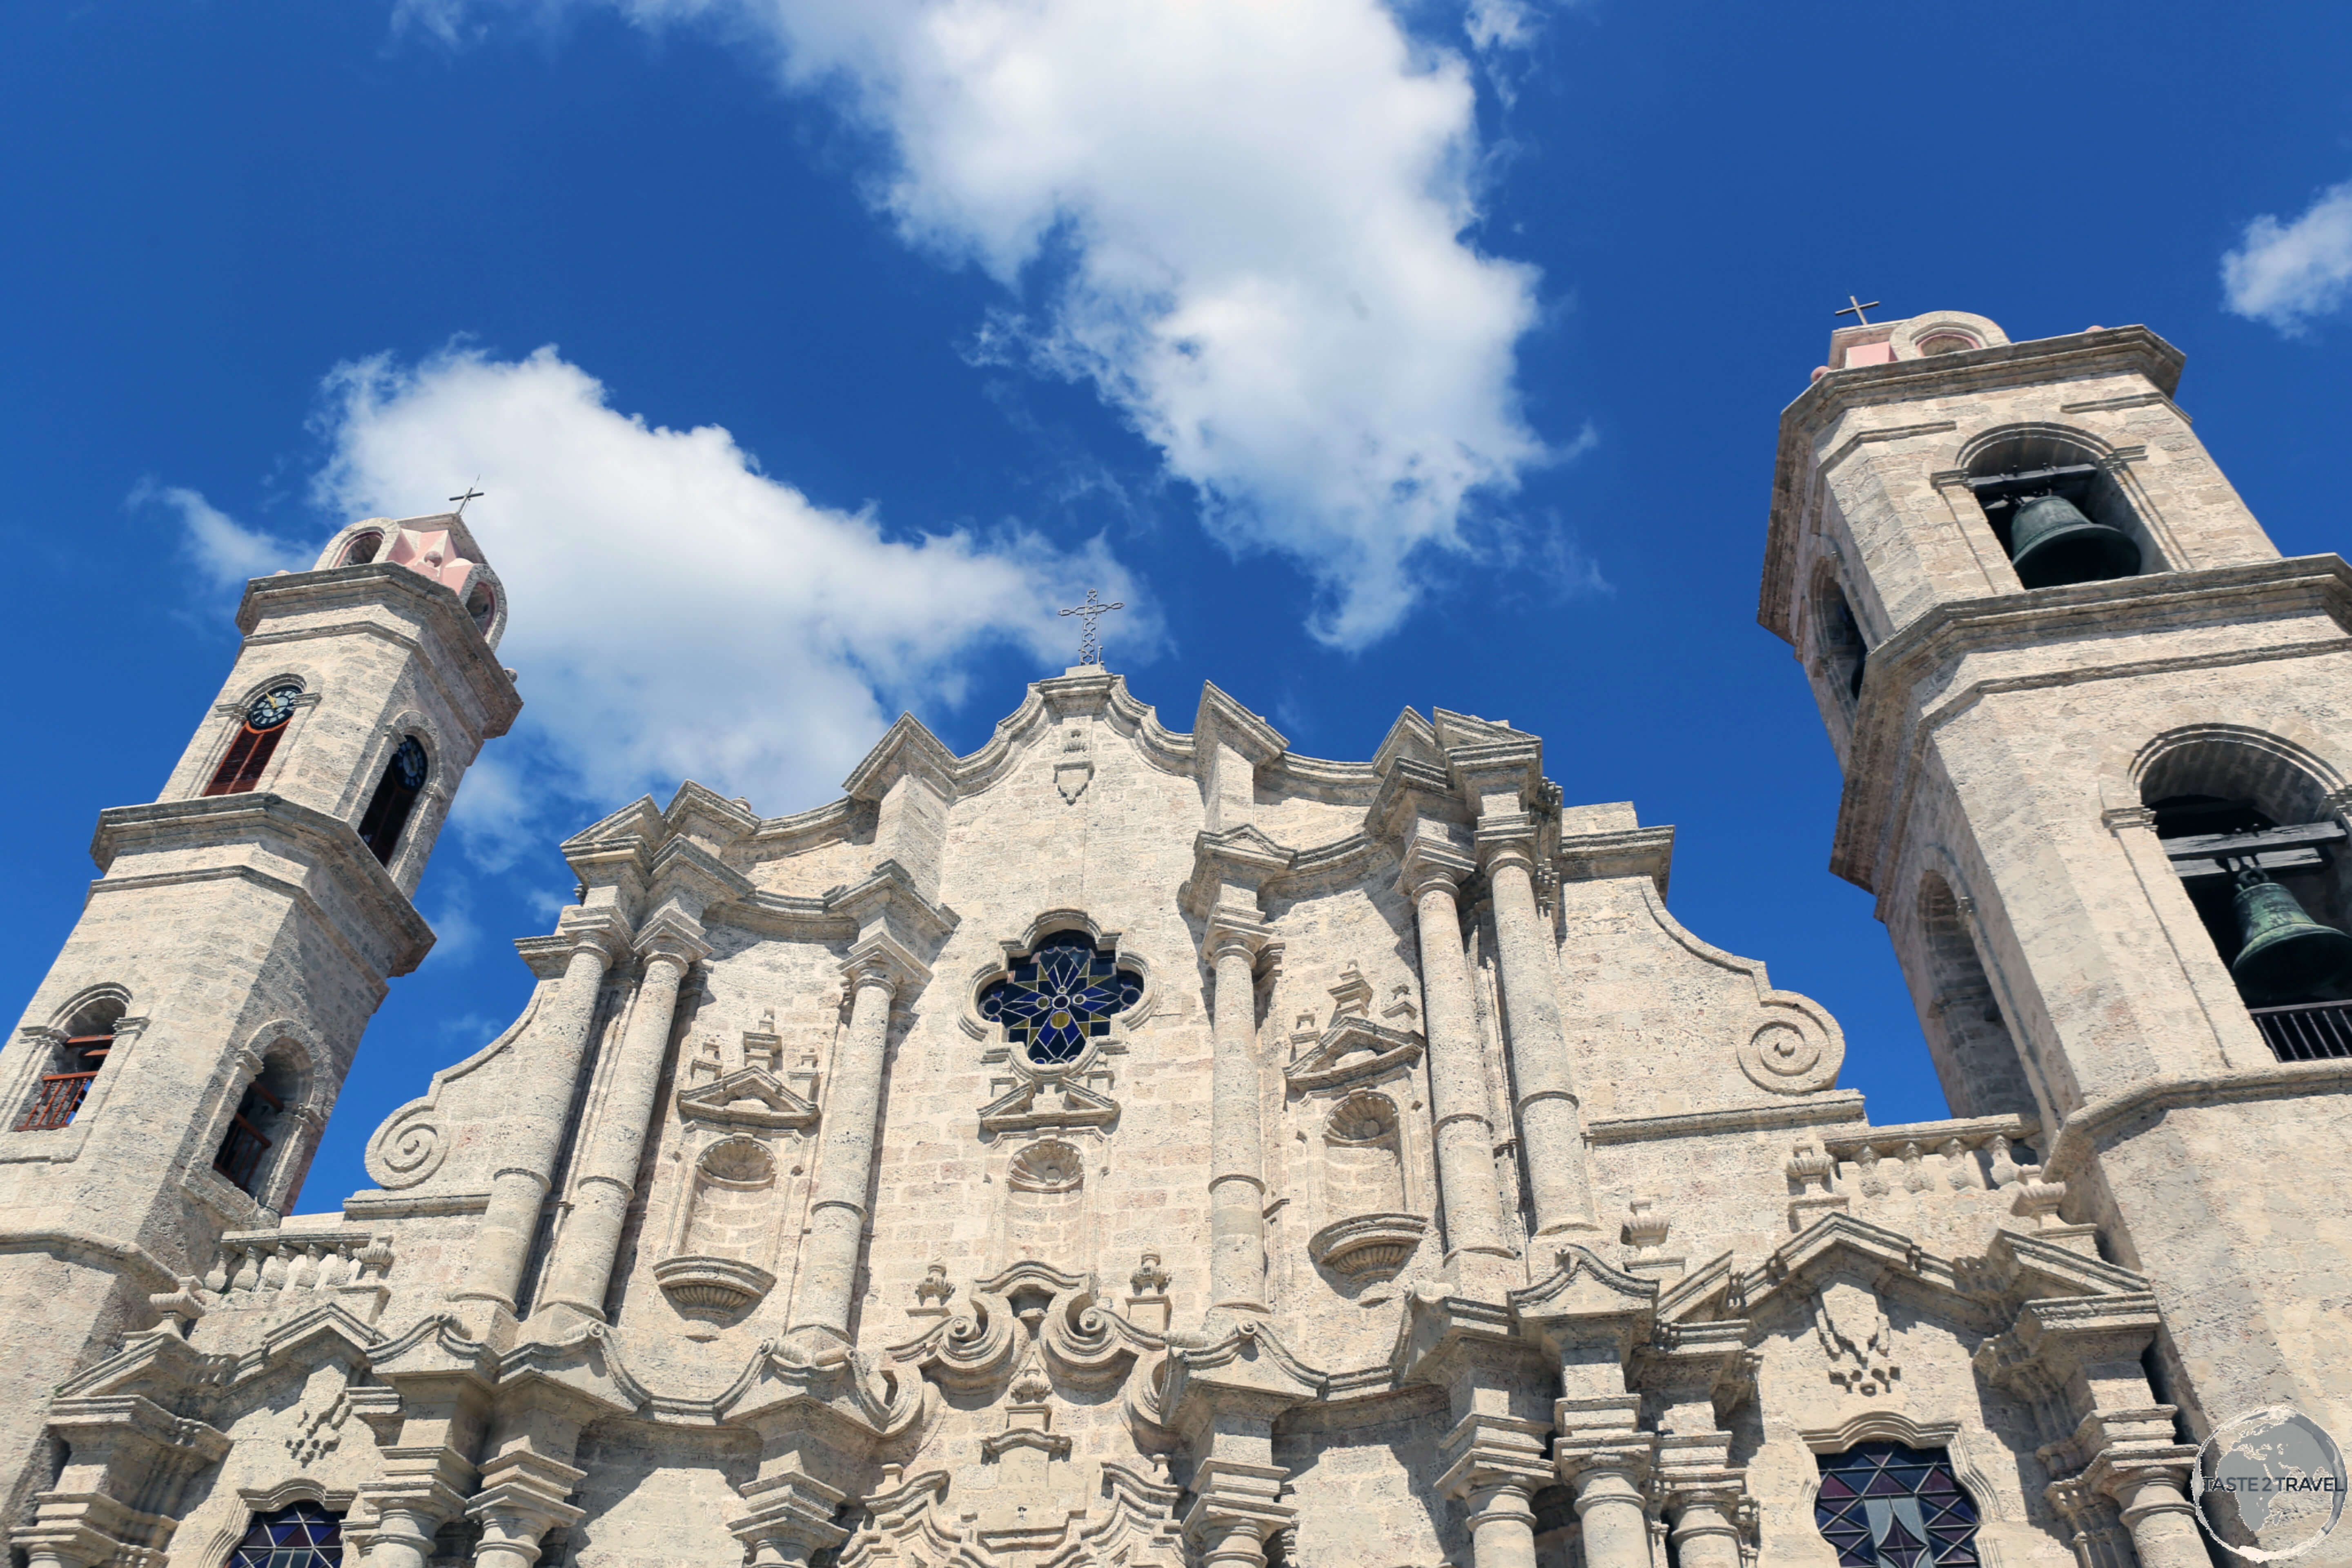 The historic Havana Cathedral can be found on Plaza de Catedral in the old town.